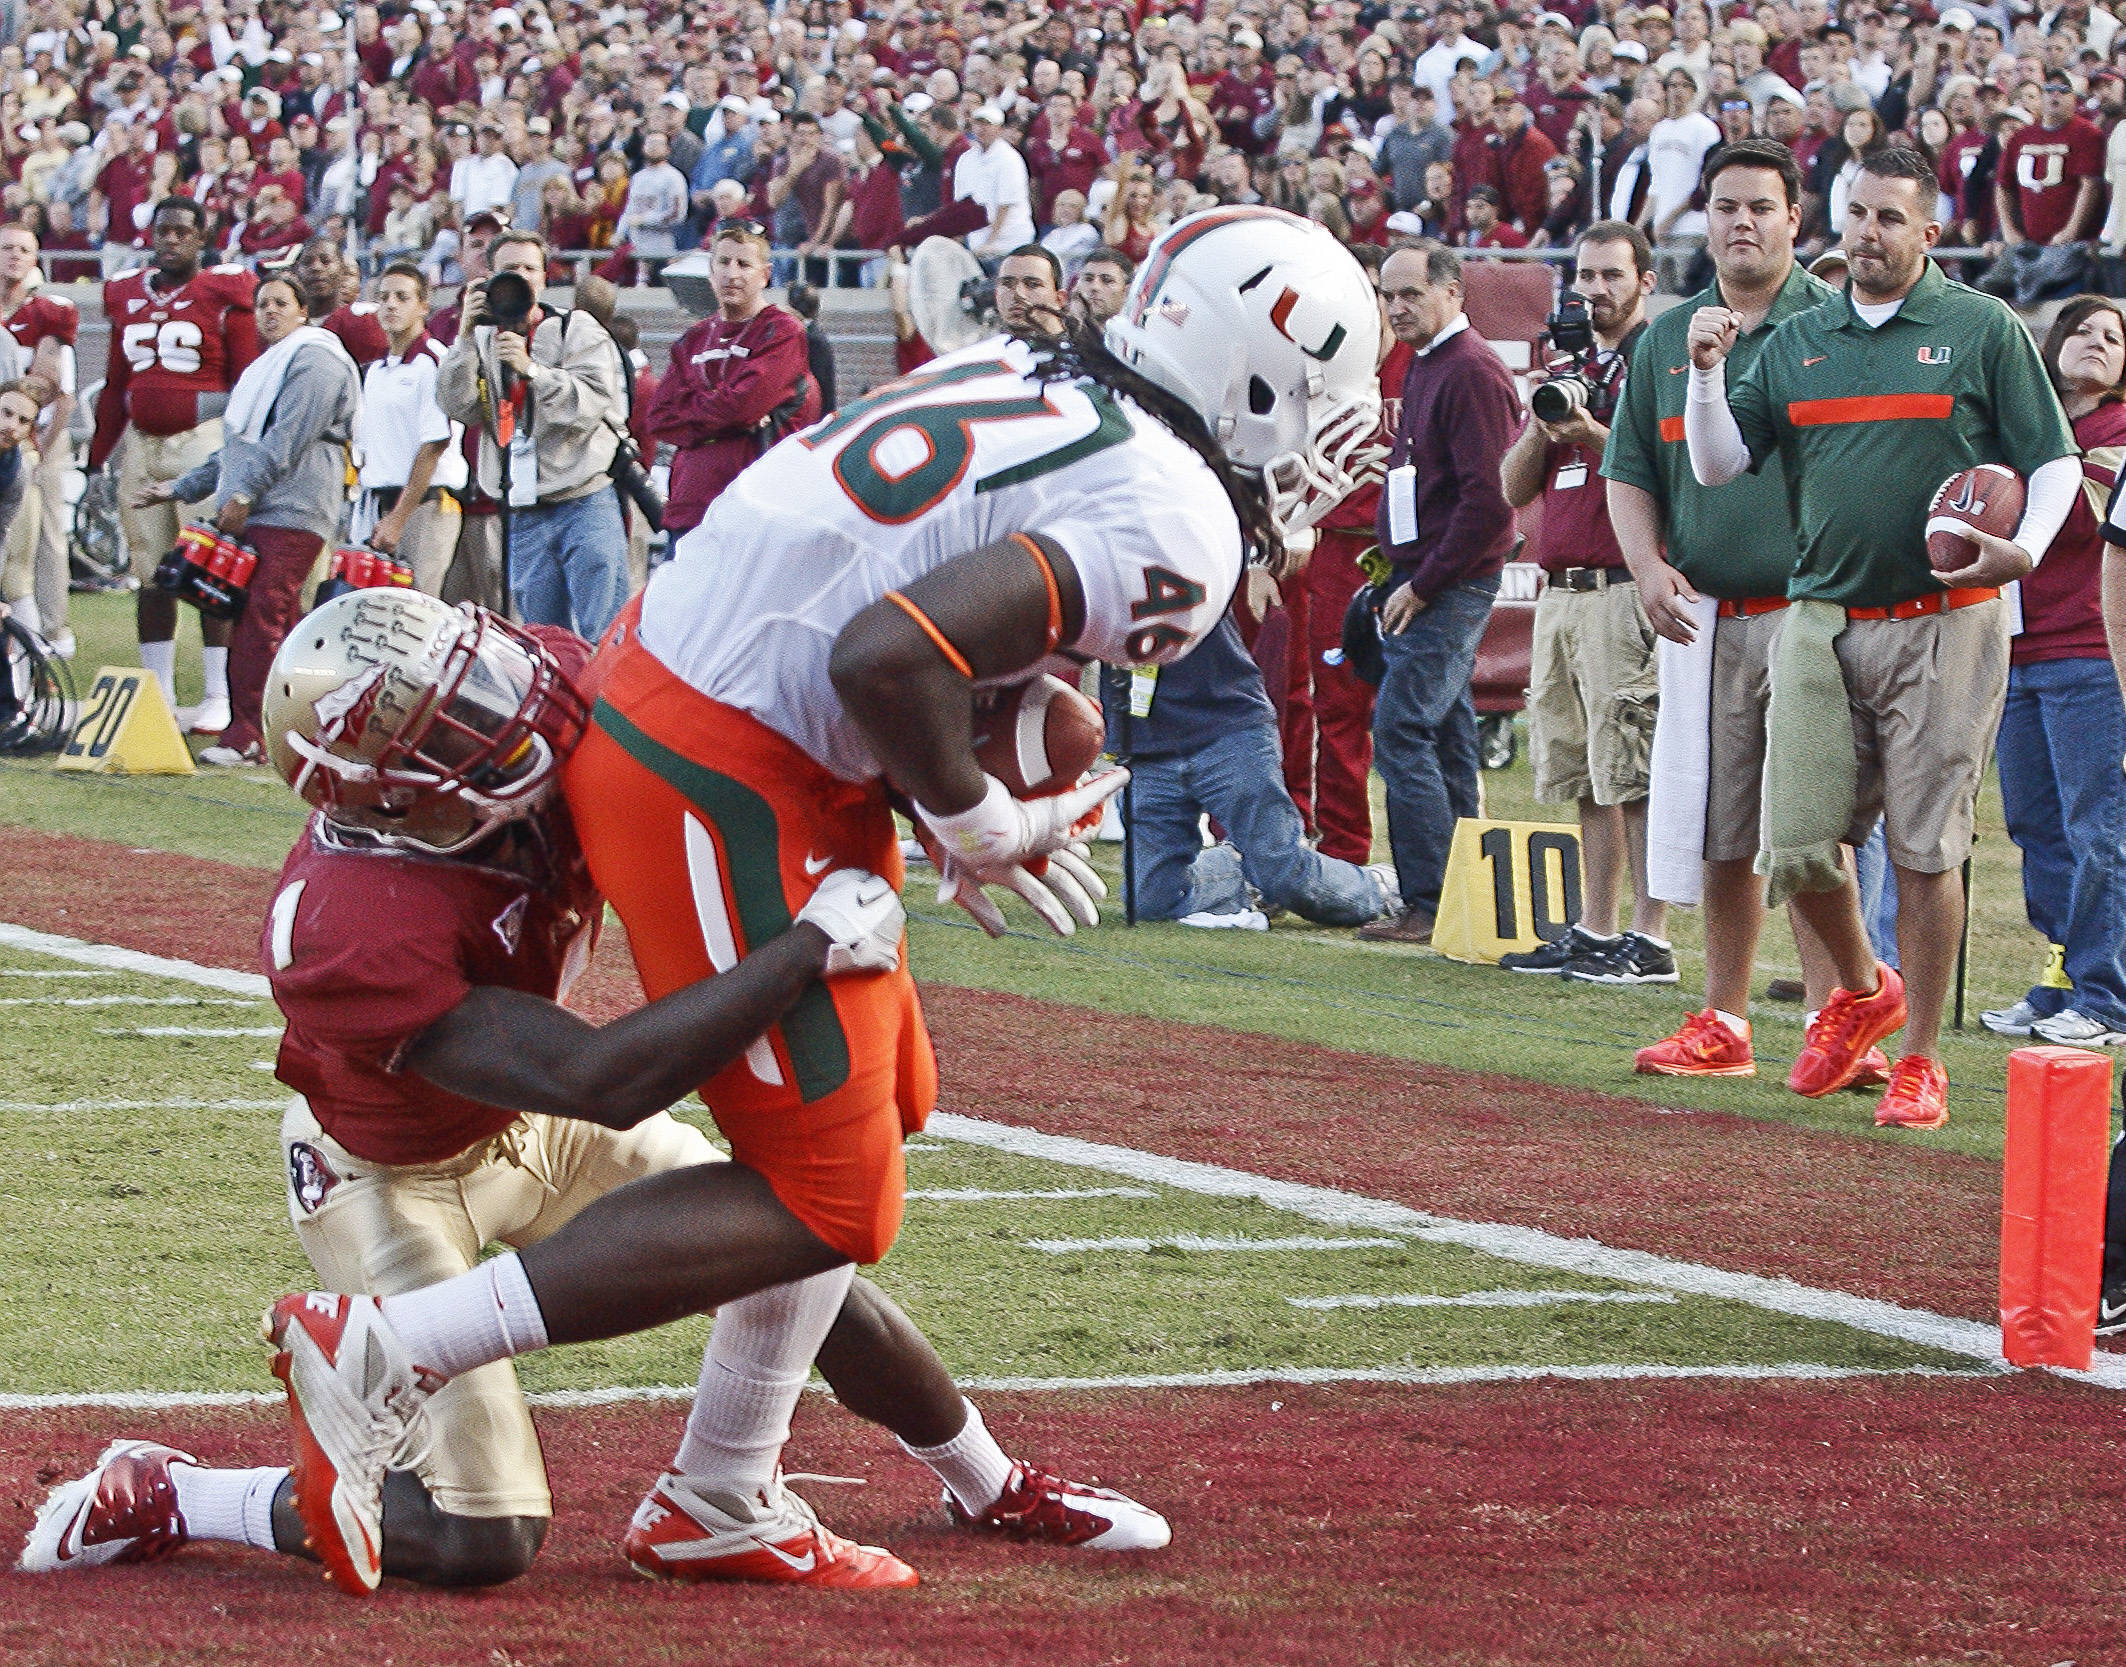 Florida State cornerback Mike Harris (1) can't stop Miami tight end Clive Walford (46) from scoring on a 2-yard touchdown pass during the second quarter of an NCAA college football game on Saturday, Nov. 12, 2011, in Tallahassee, Fla. (AP Photo/Phil Sears)